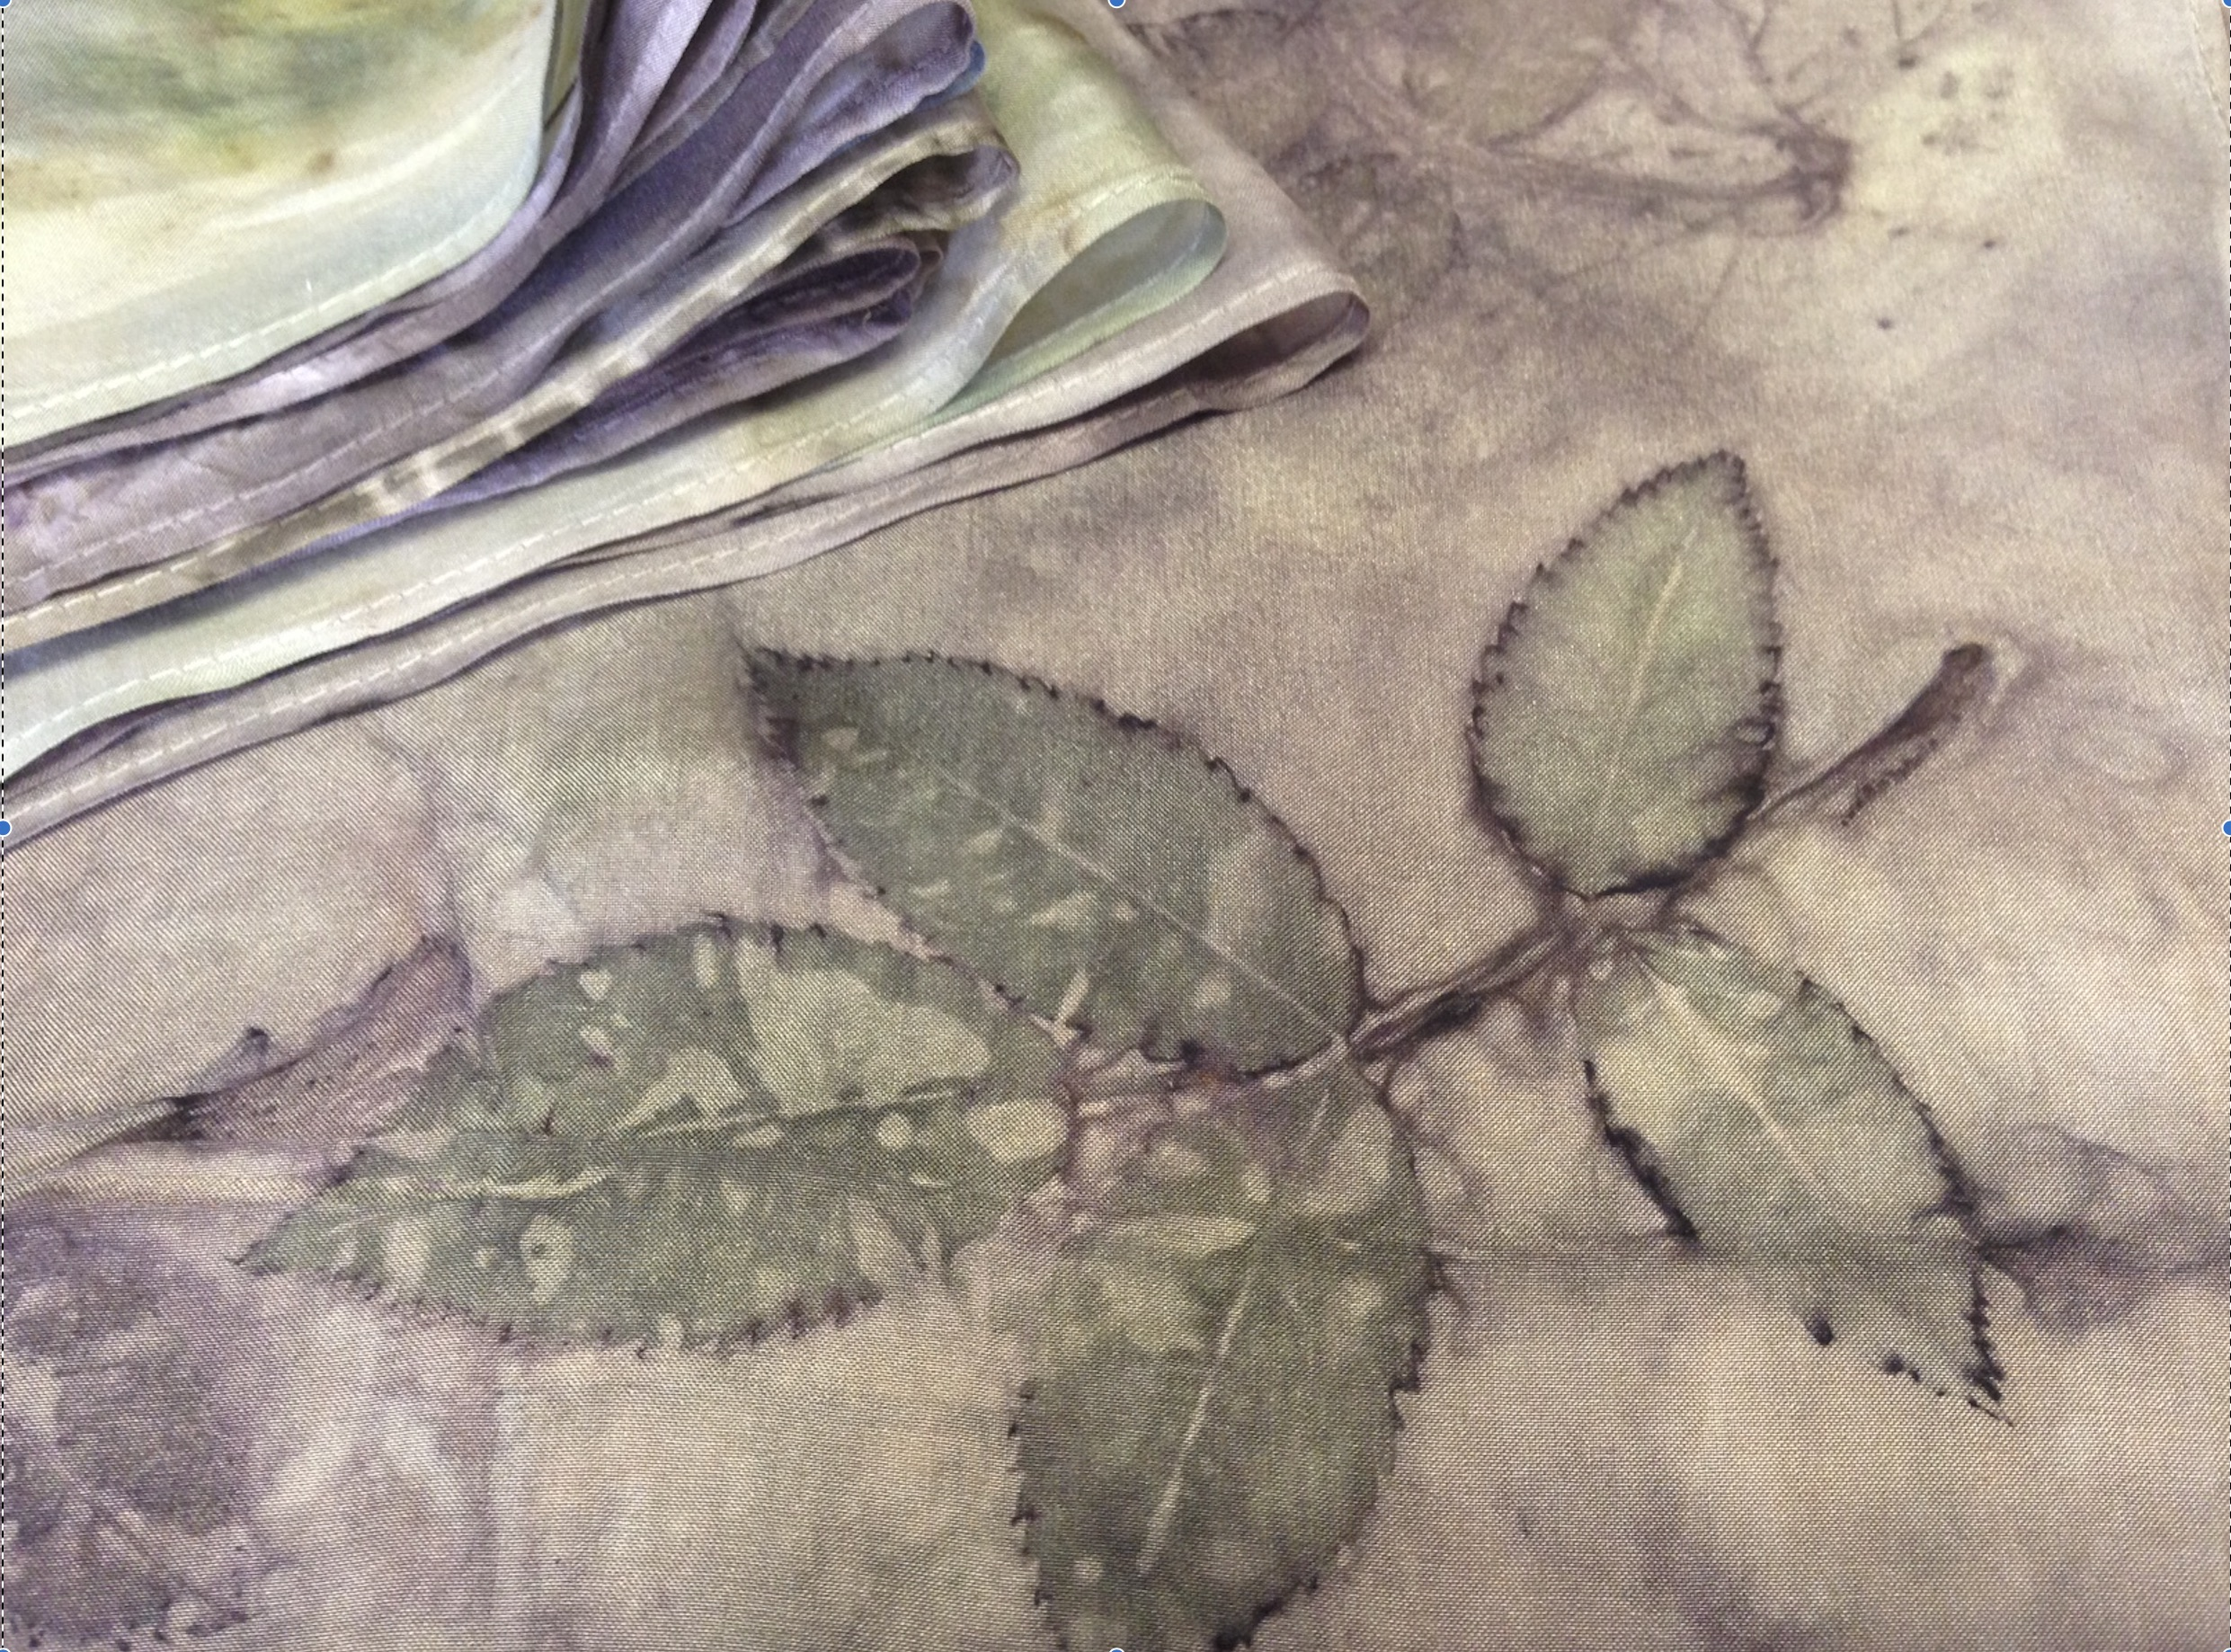 Eco Prints Bundle Dye Working : £85   Saturday, April 6, 2019  10:00 AM  3:00 PM  This workshop will introucuce you to the magic of eco printing with leaves to create pattern and colour, using the direct leaf contact method of bundle dyeing. Experimenting with a variety of leaves on fabric and paper, endless colour and patterned prints will be achieved, leaving you with the crazy desire want to create prints on every tired and dull item of clothing you own.  *all materials included, please bring a towel and bag to carry home wet items. Green